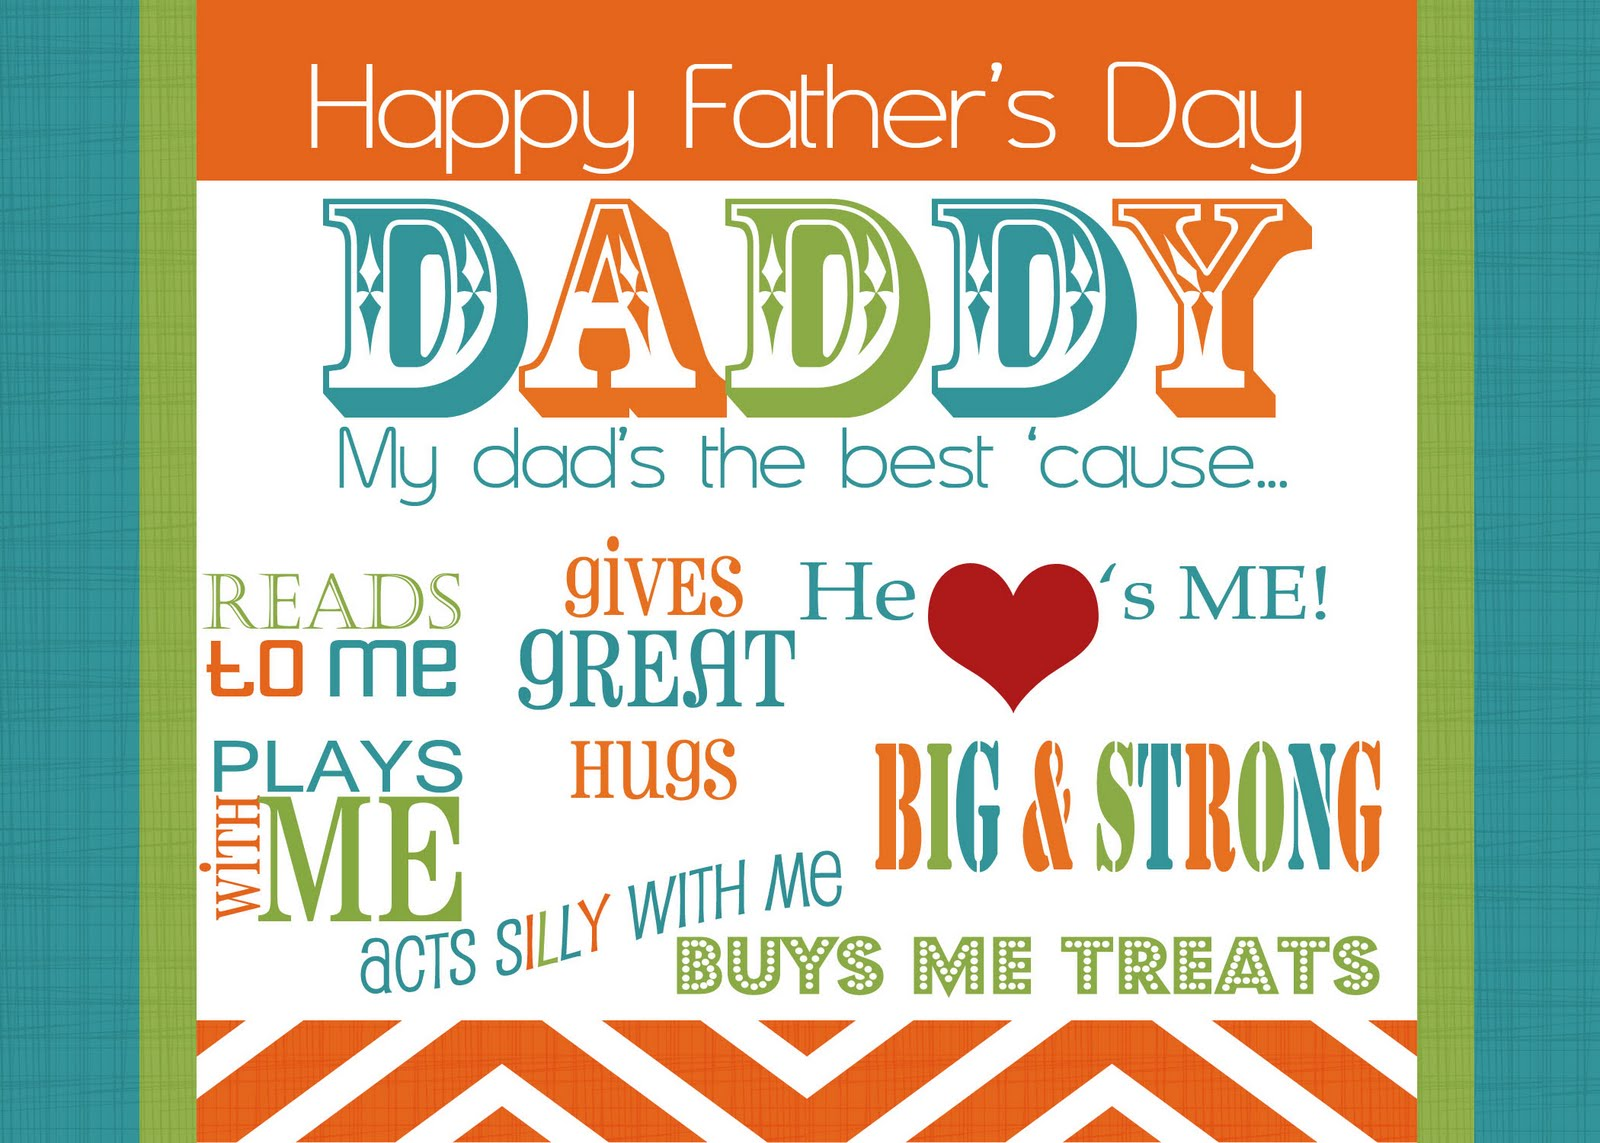 Happy Fathers Day Card Ideas Gifts Ideas Homemade And Printable